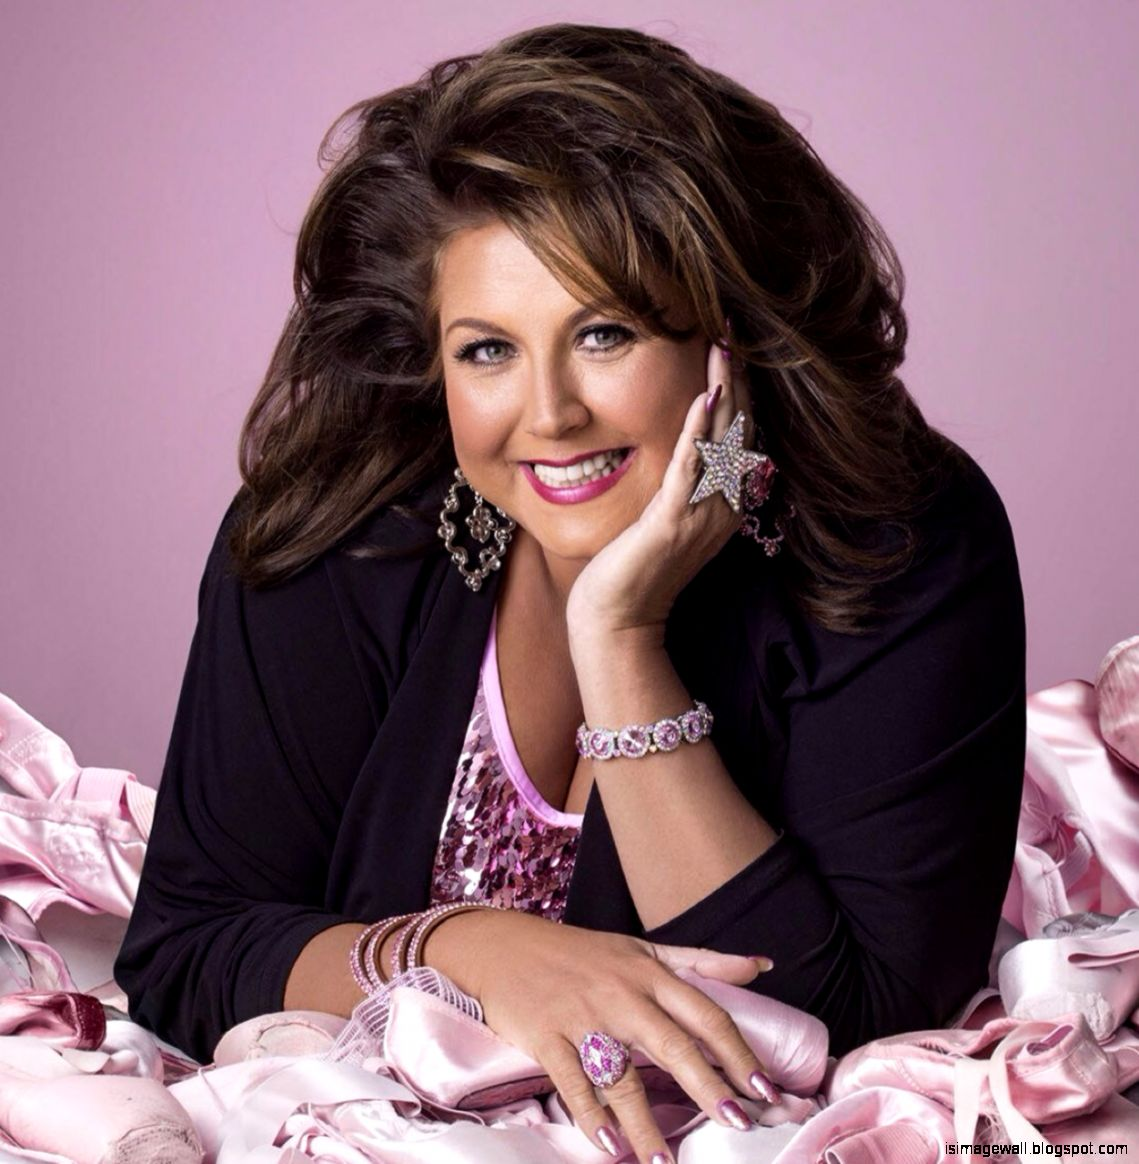 Abby Lee Miller Wallpapers Image Wallpapers